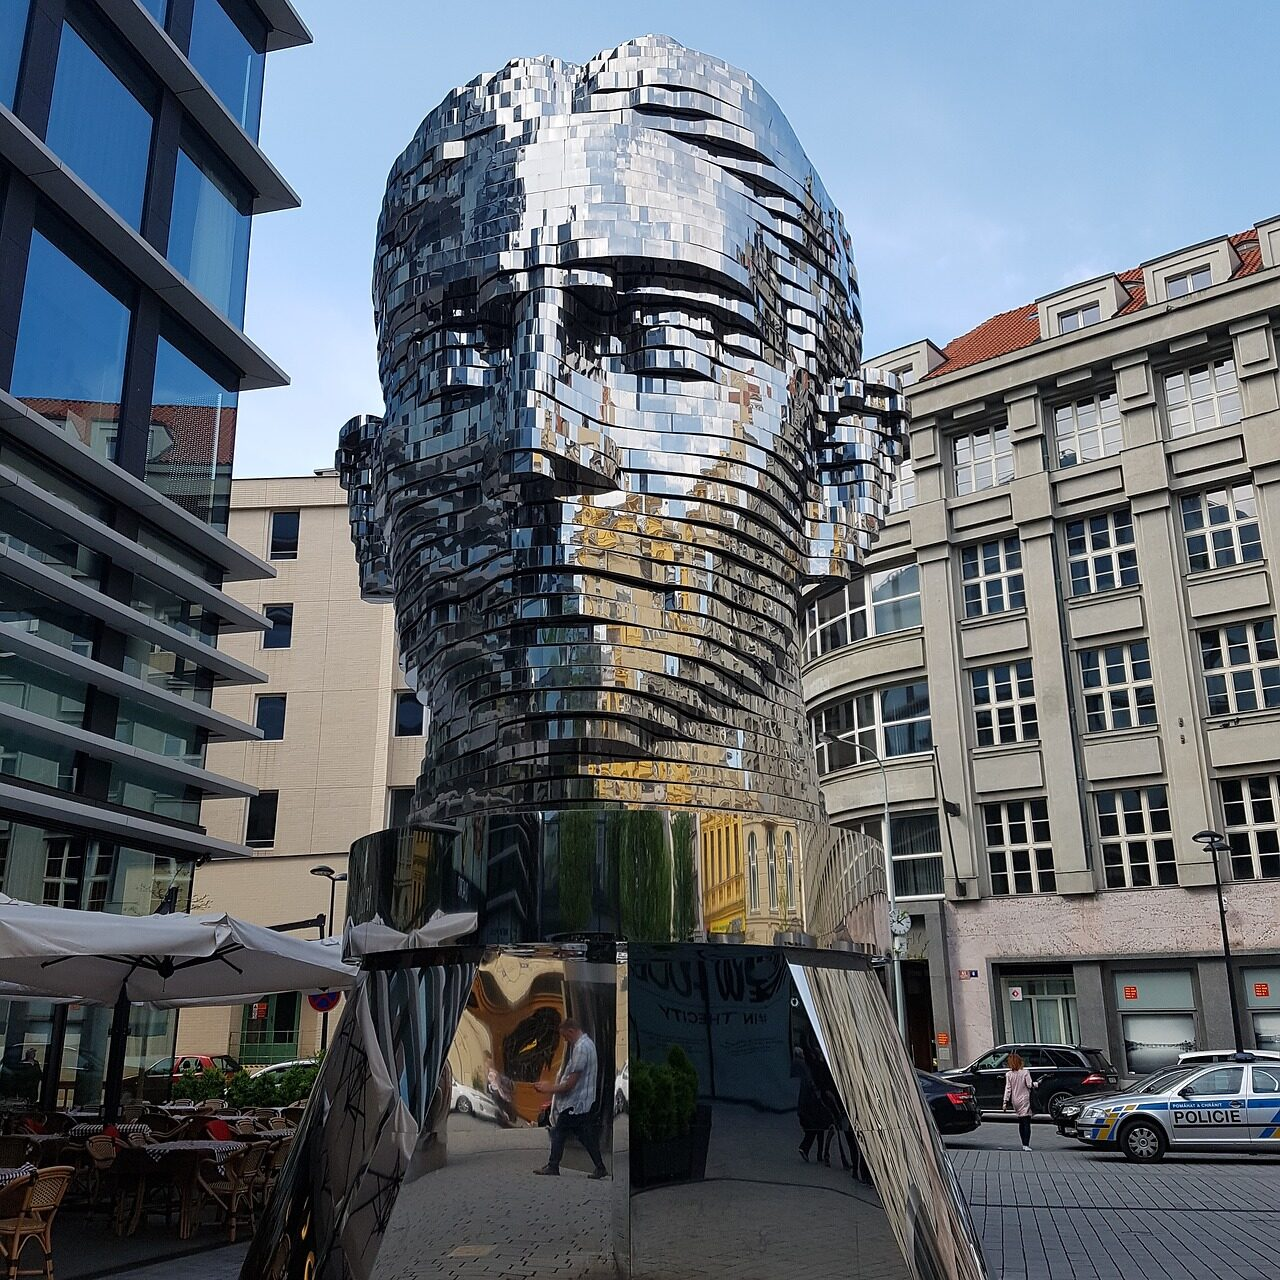 Franz Kafka Head statue in Prague, rotates constantly, so that the face is not always visible.